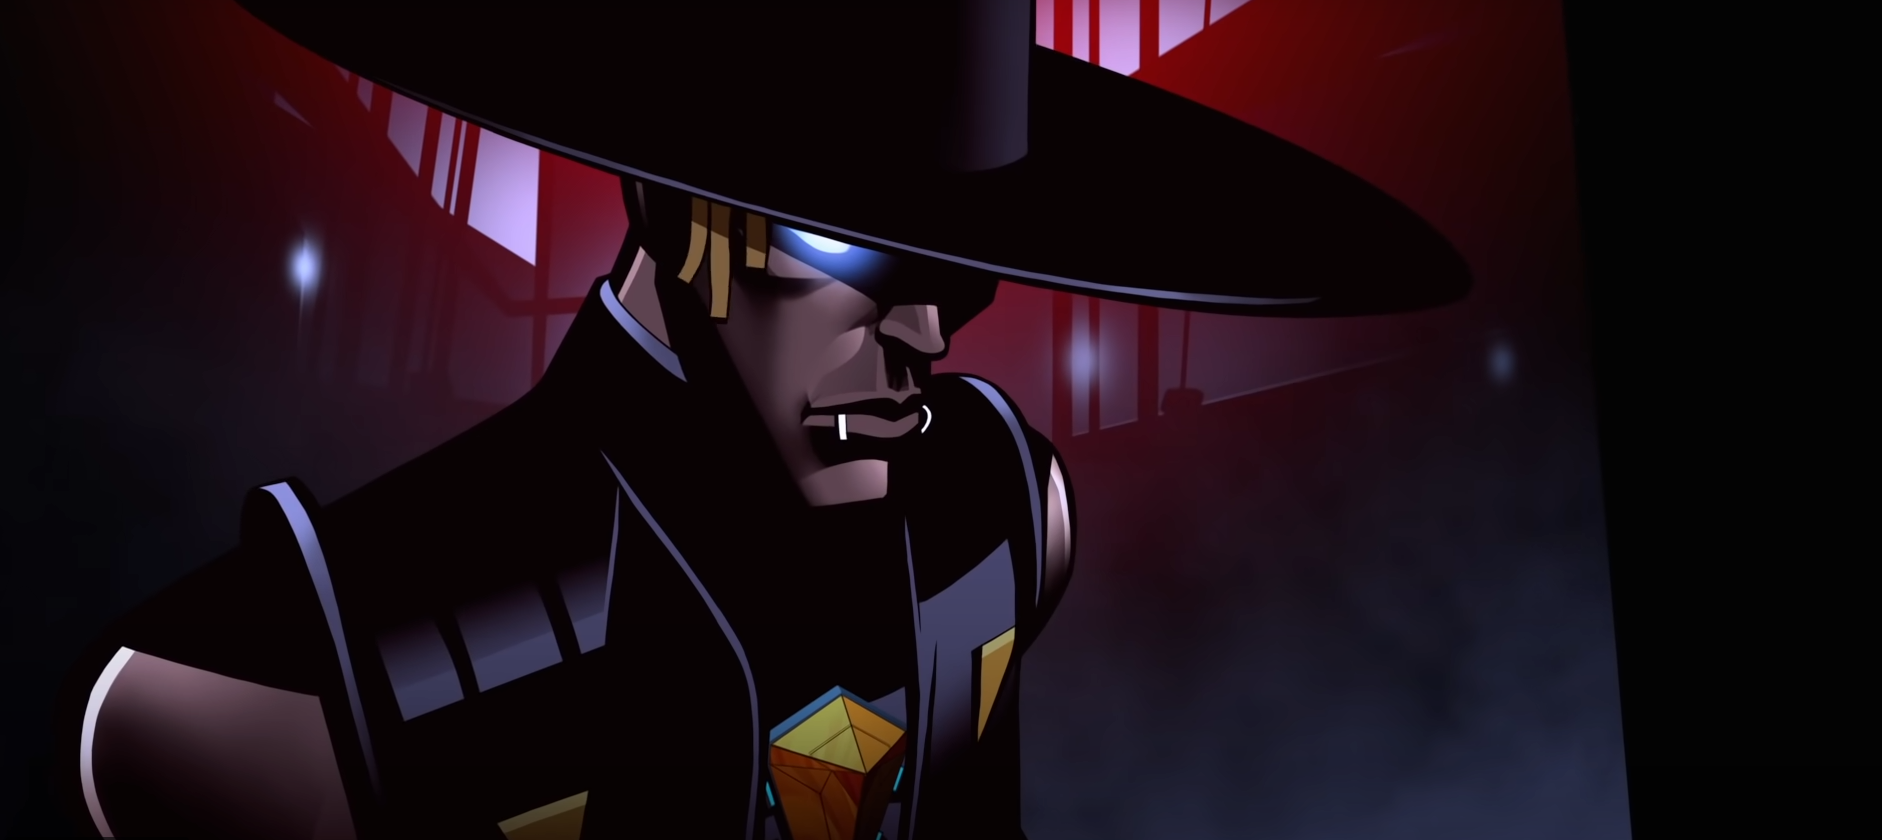 Seer from Apex Legends in his Stories from the Outlands animated short